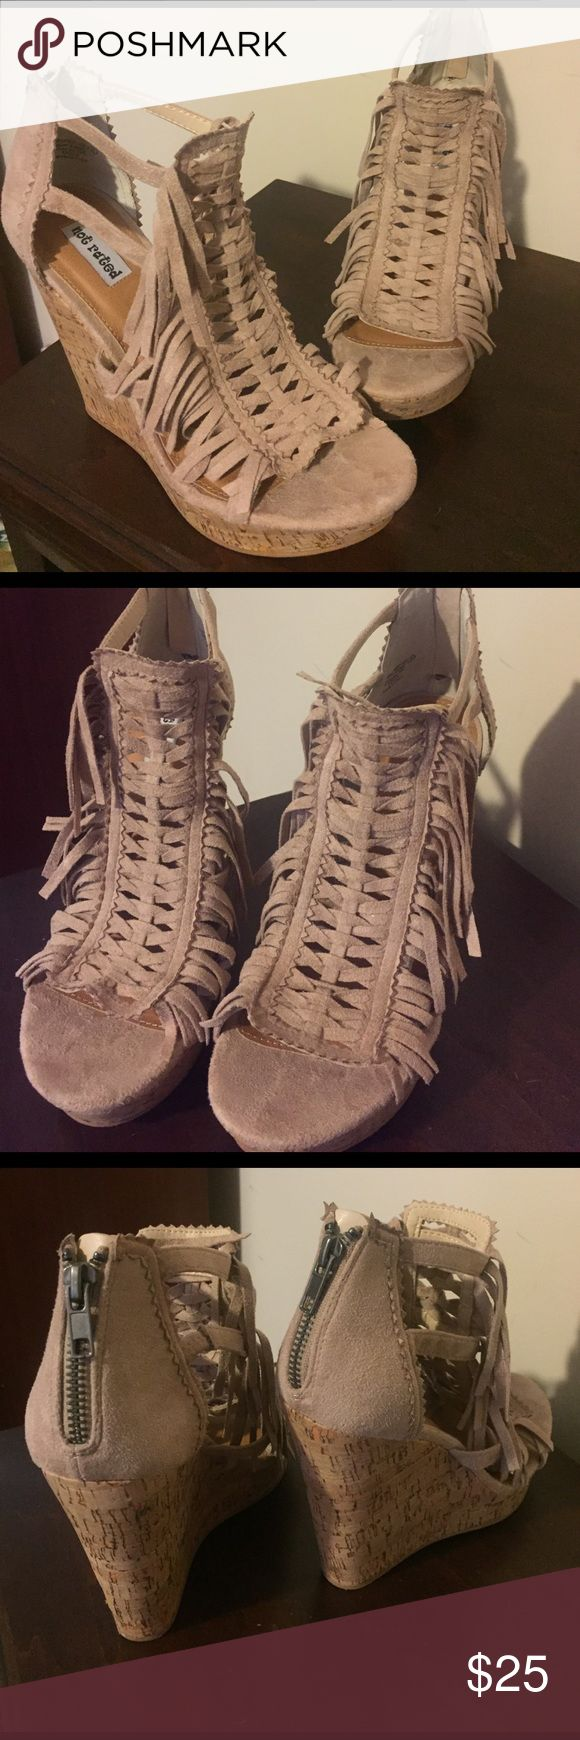 Not rated taupe fringe wedges Not rated taupe fringe wedges. Size 8. So cute! Not Rated Shoes Wedges